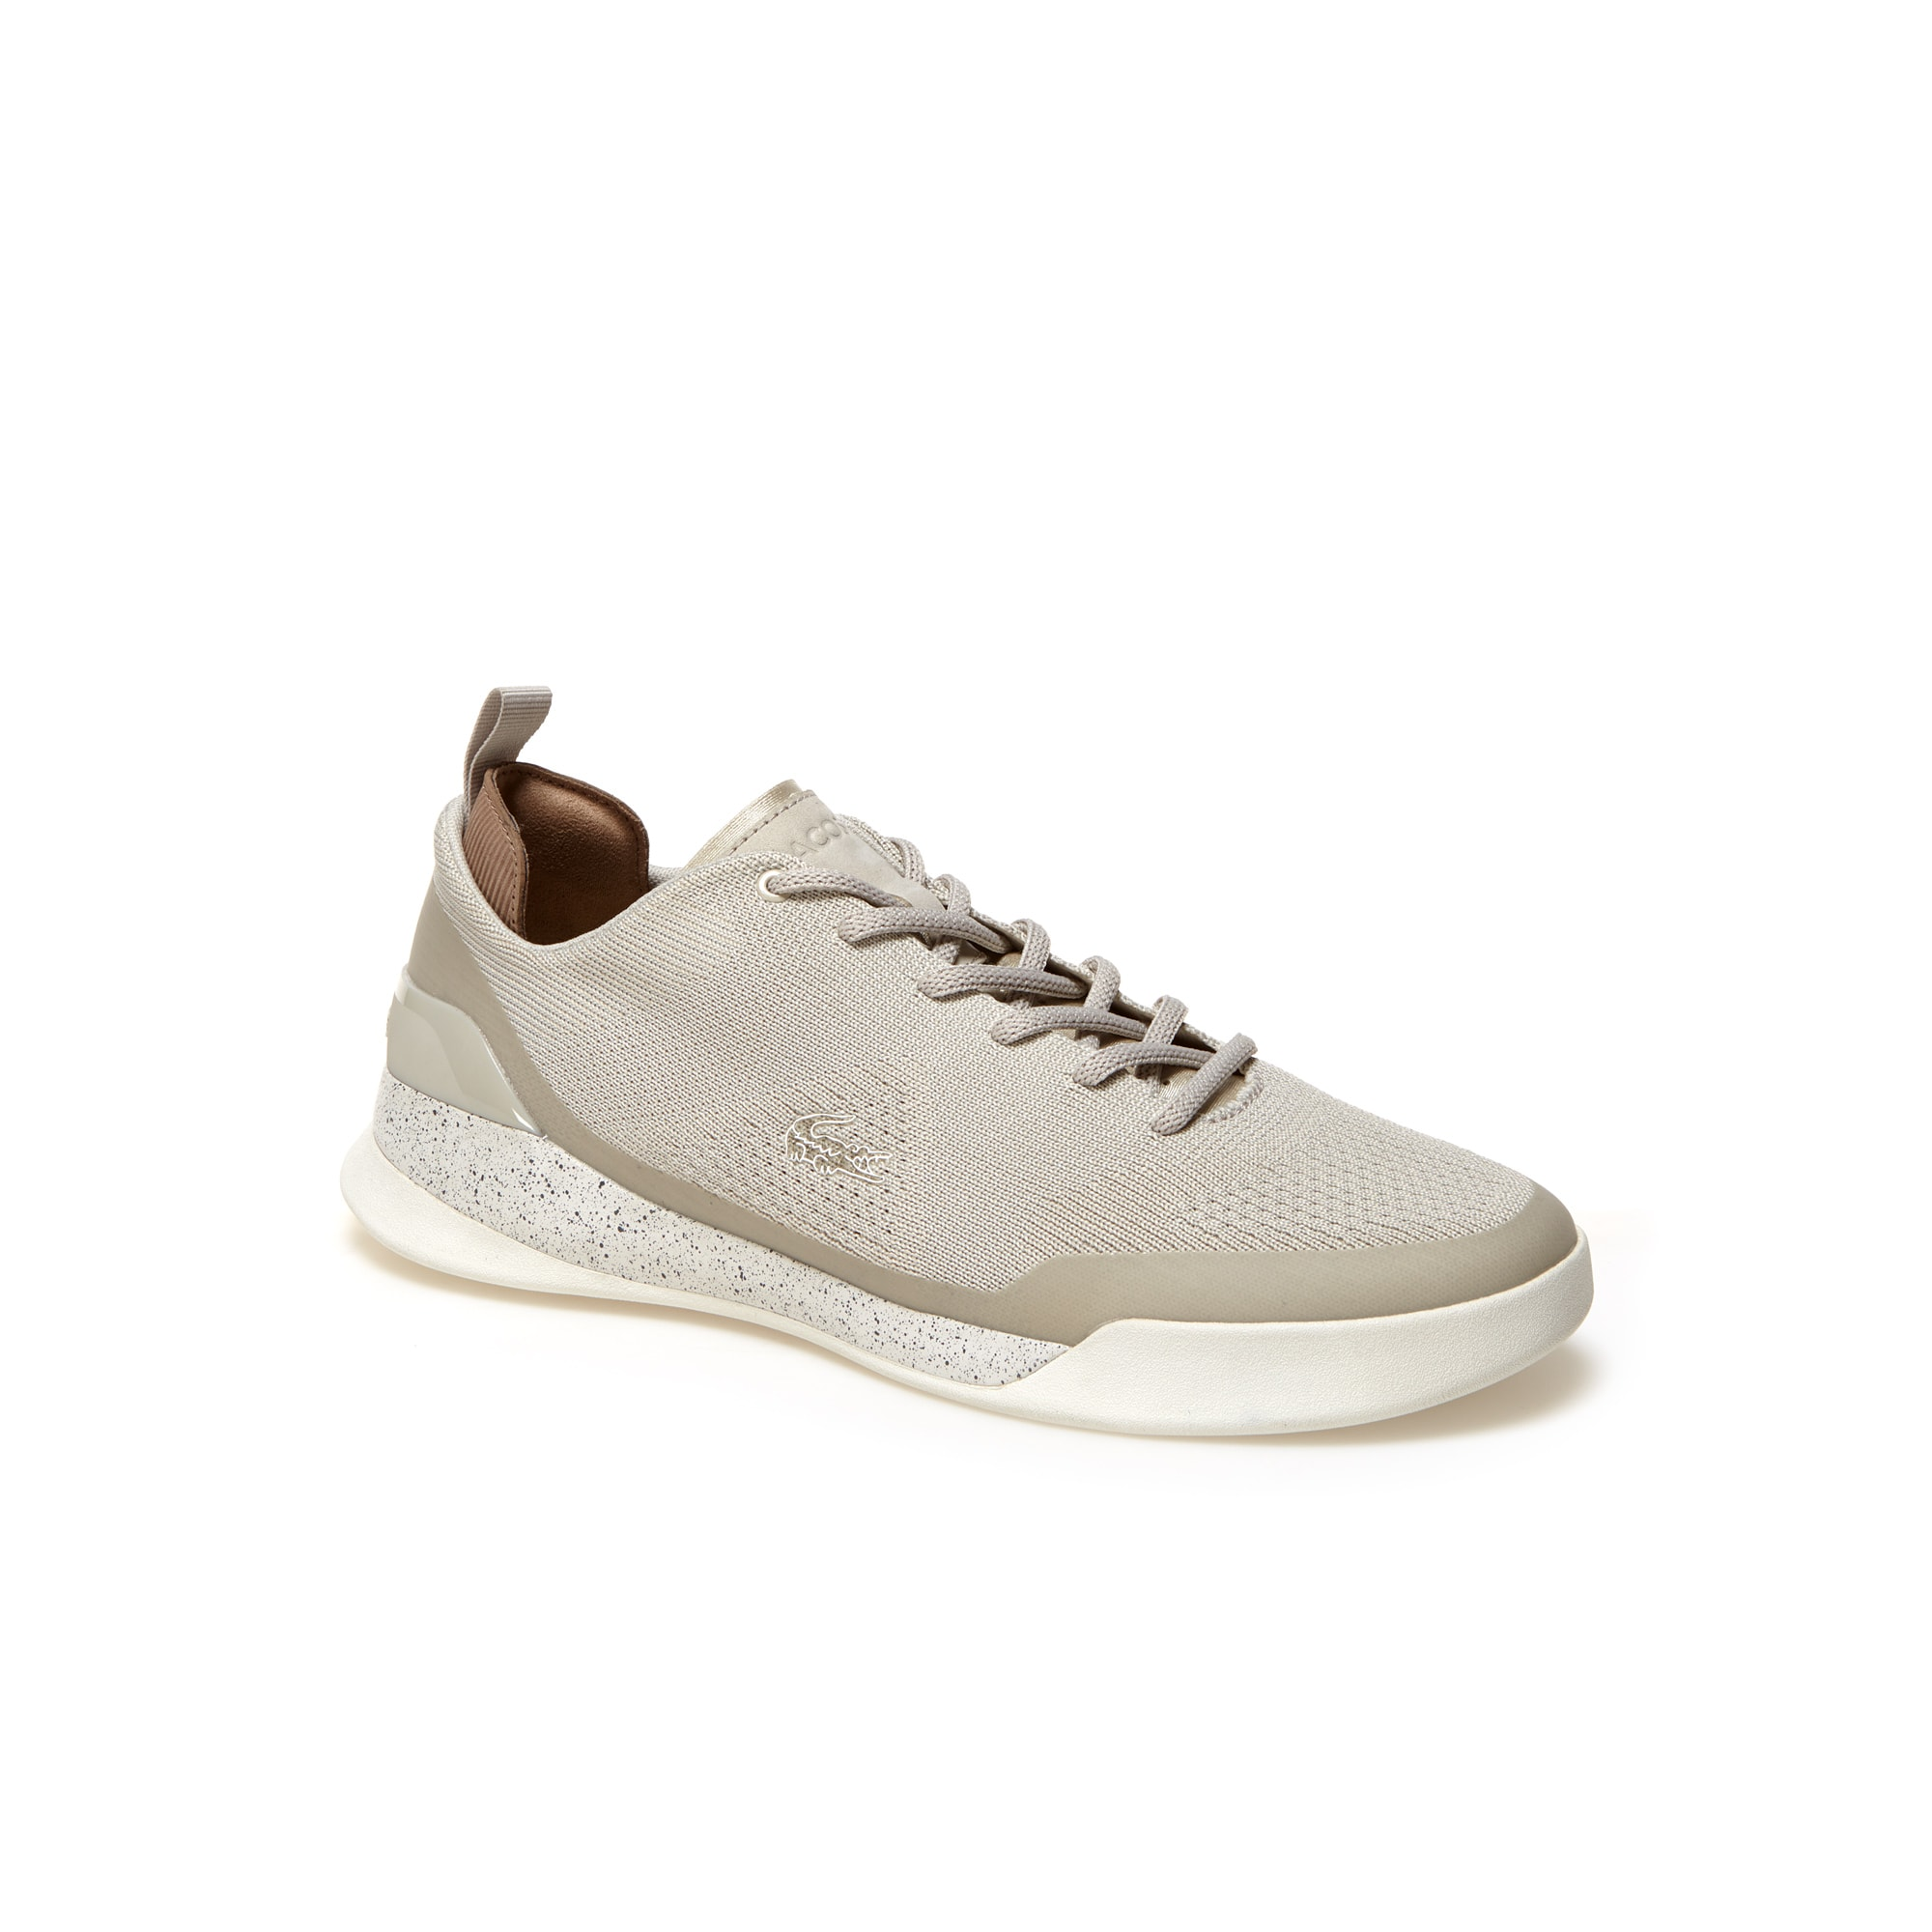 LT Dual Elite herensneakers van textiel